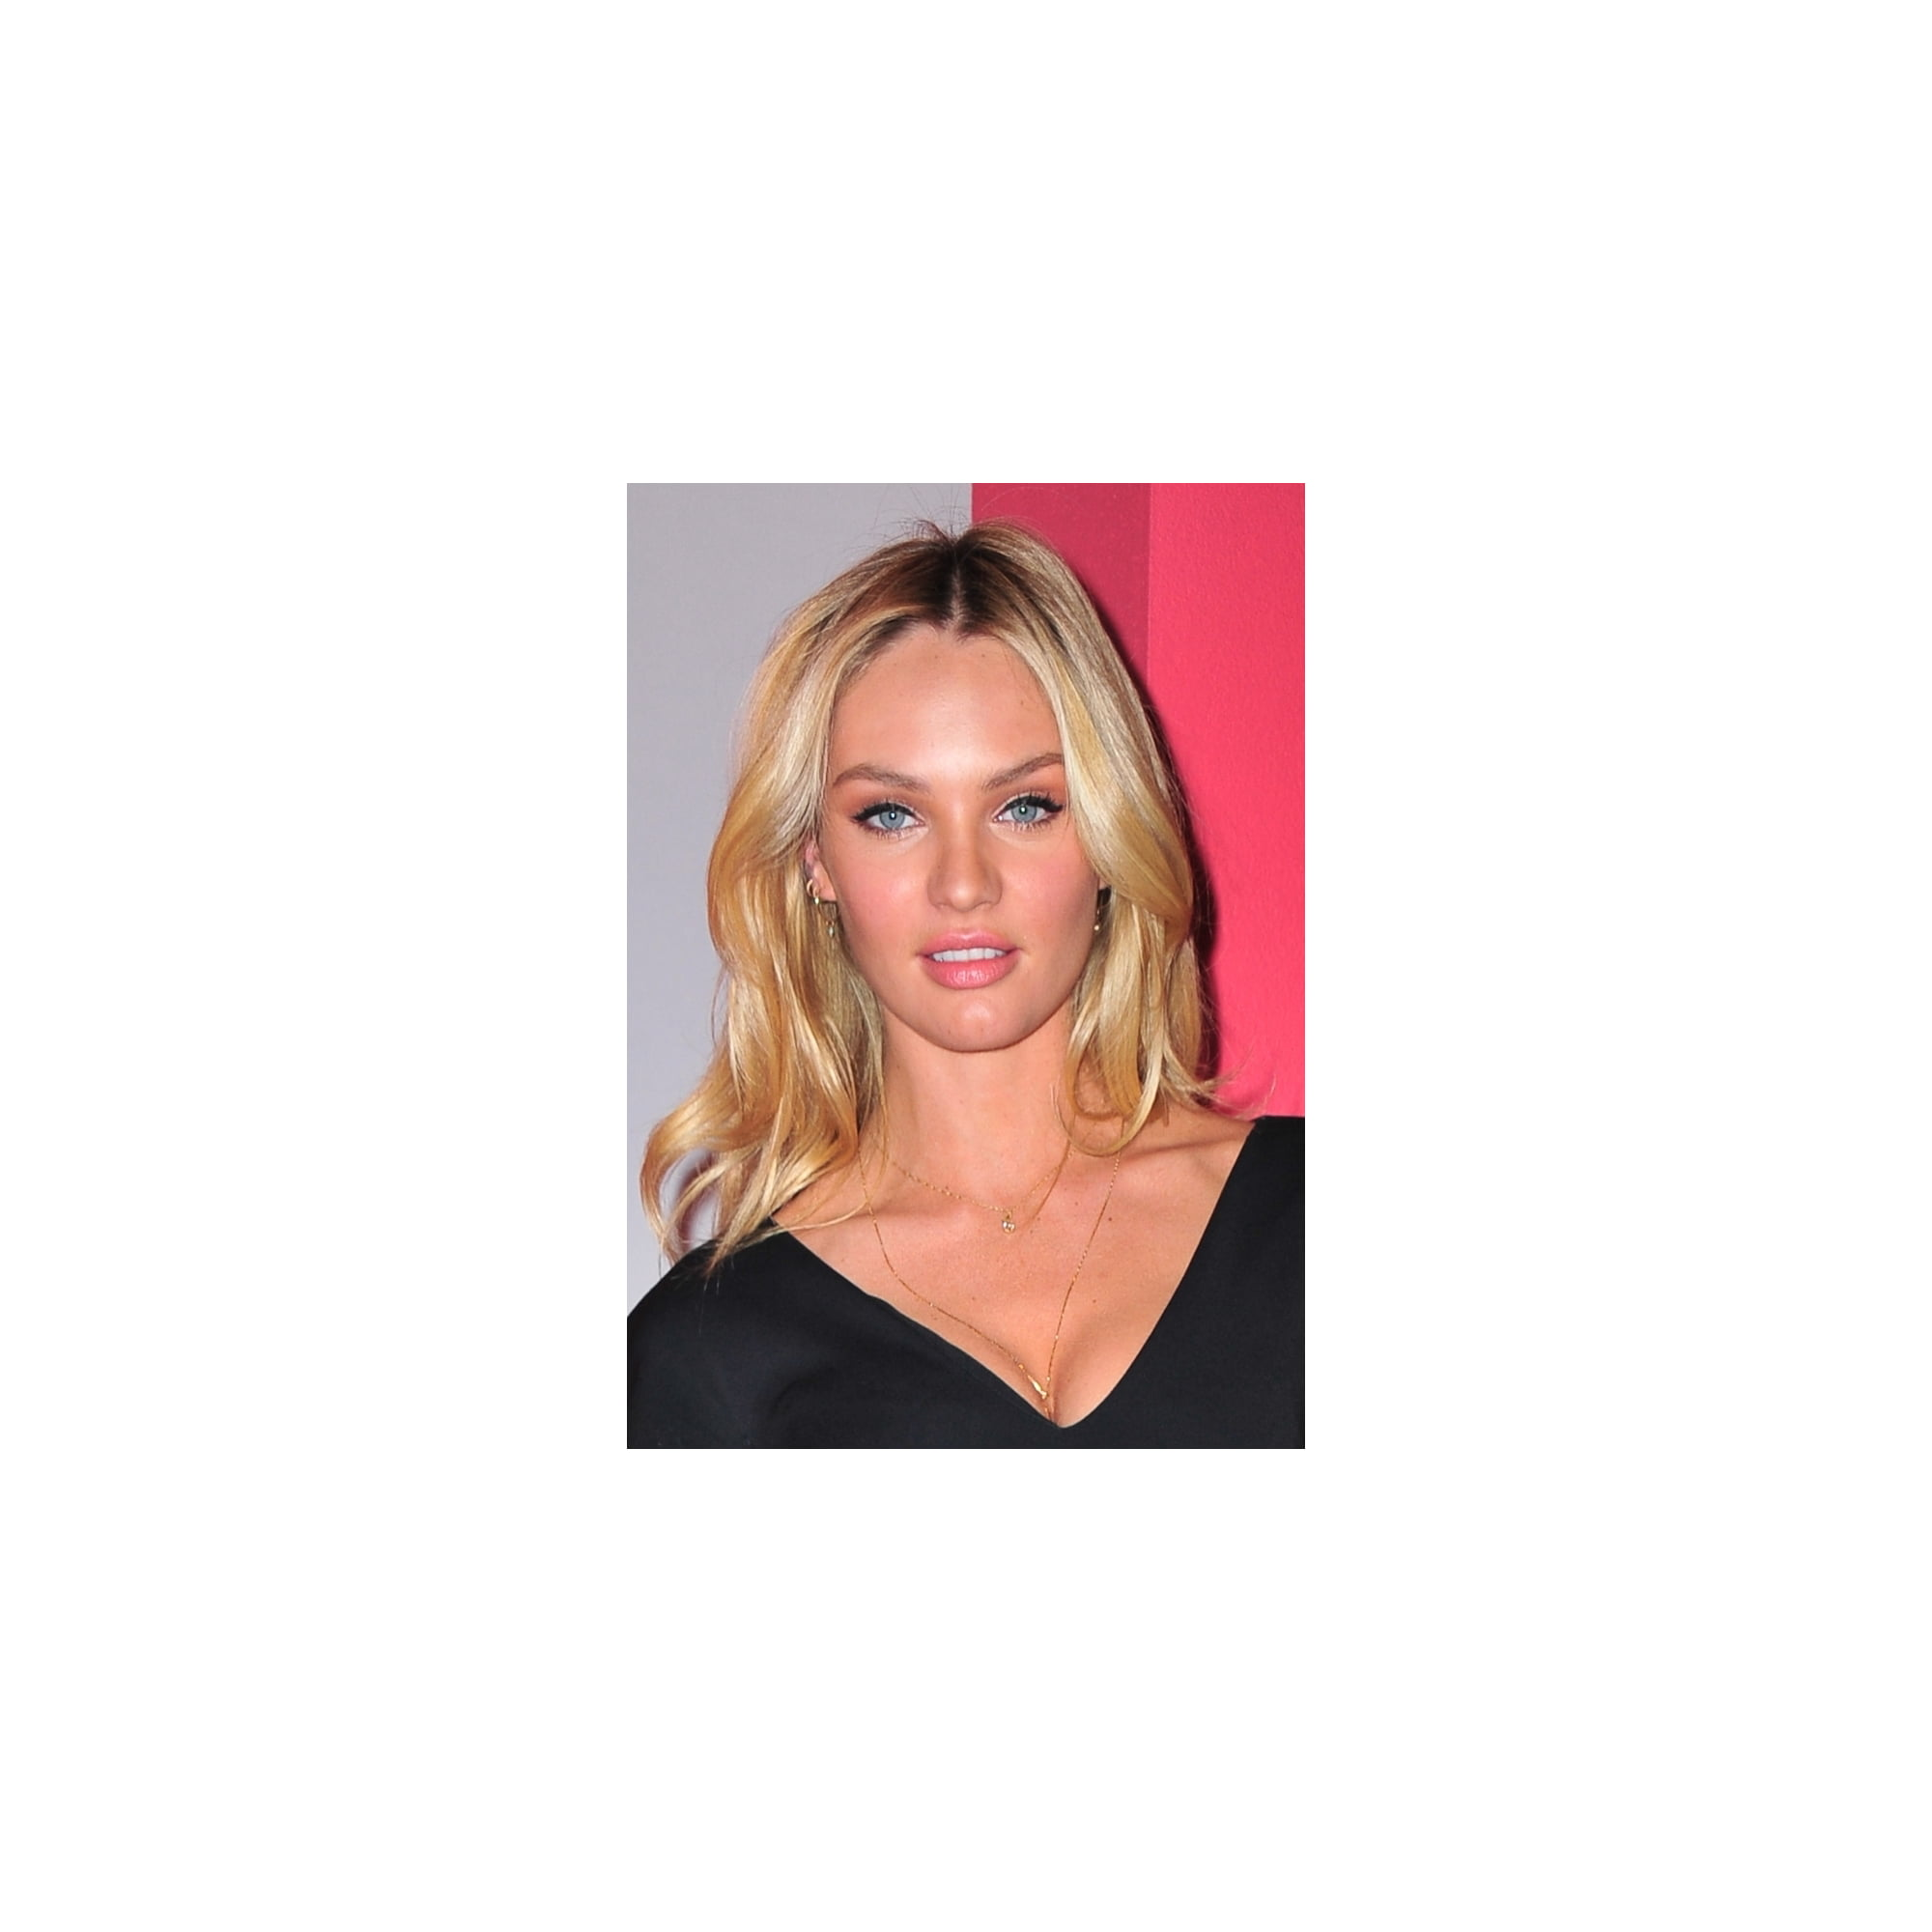 Candice Swanepoel At In Store Appearance For Victoria S Secret Very Sexy Tour Hits Nyc Photo Print 16 X 20 Walmart Com Walmart Com